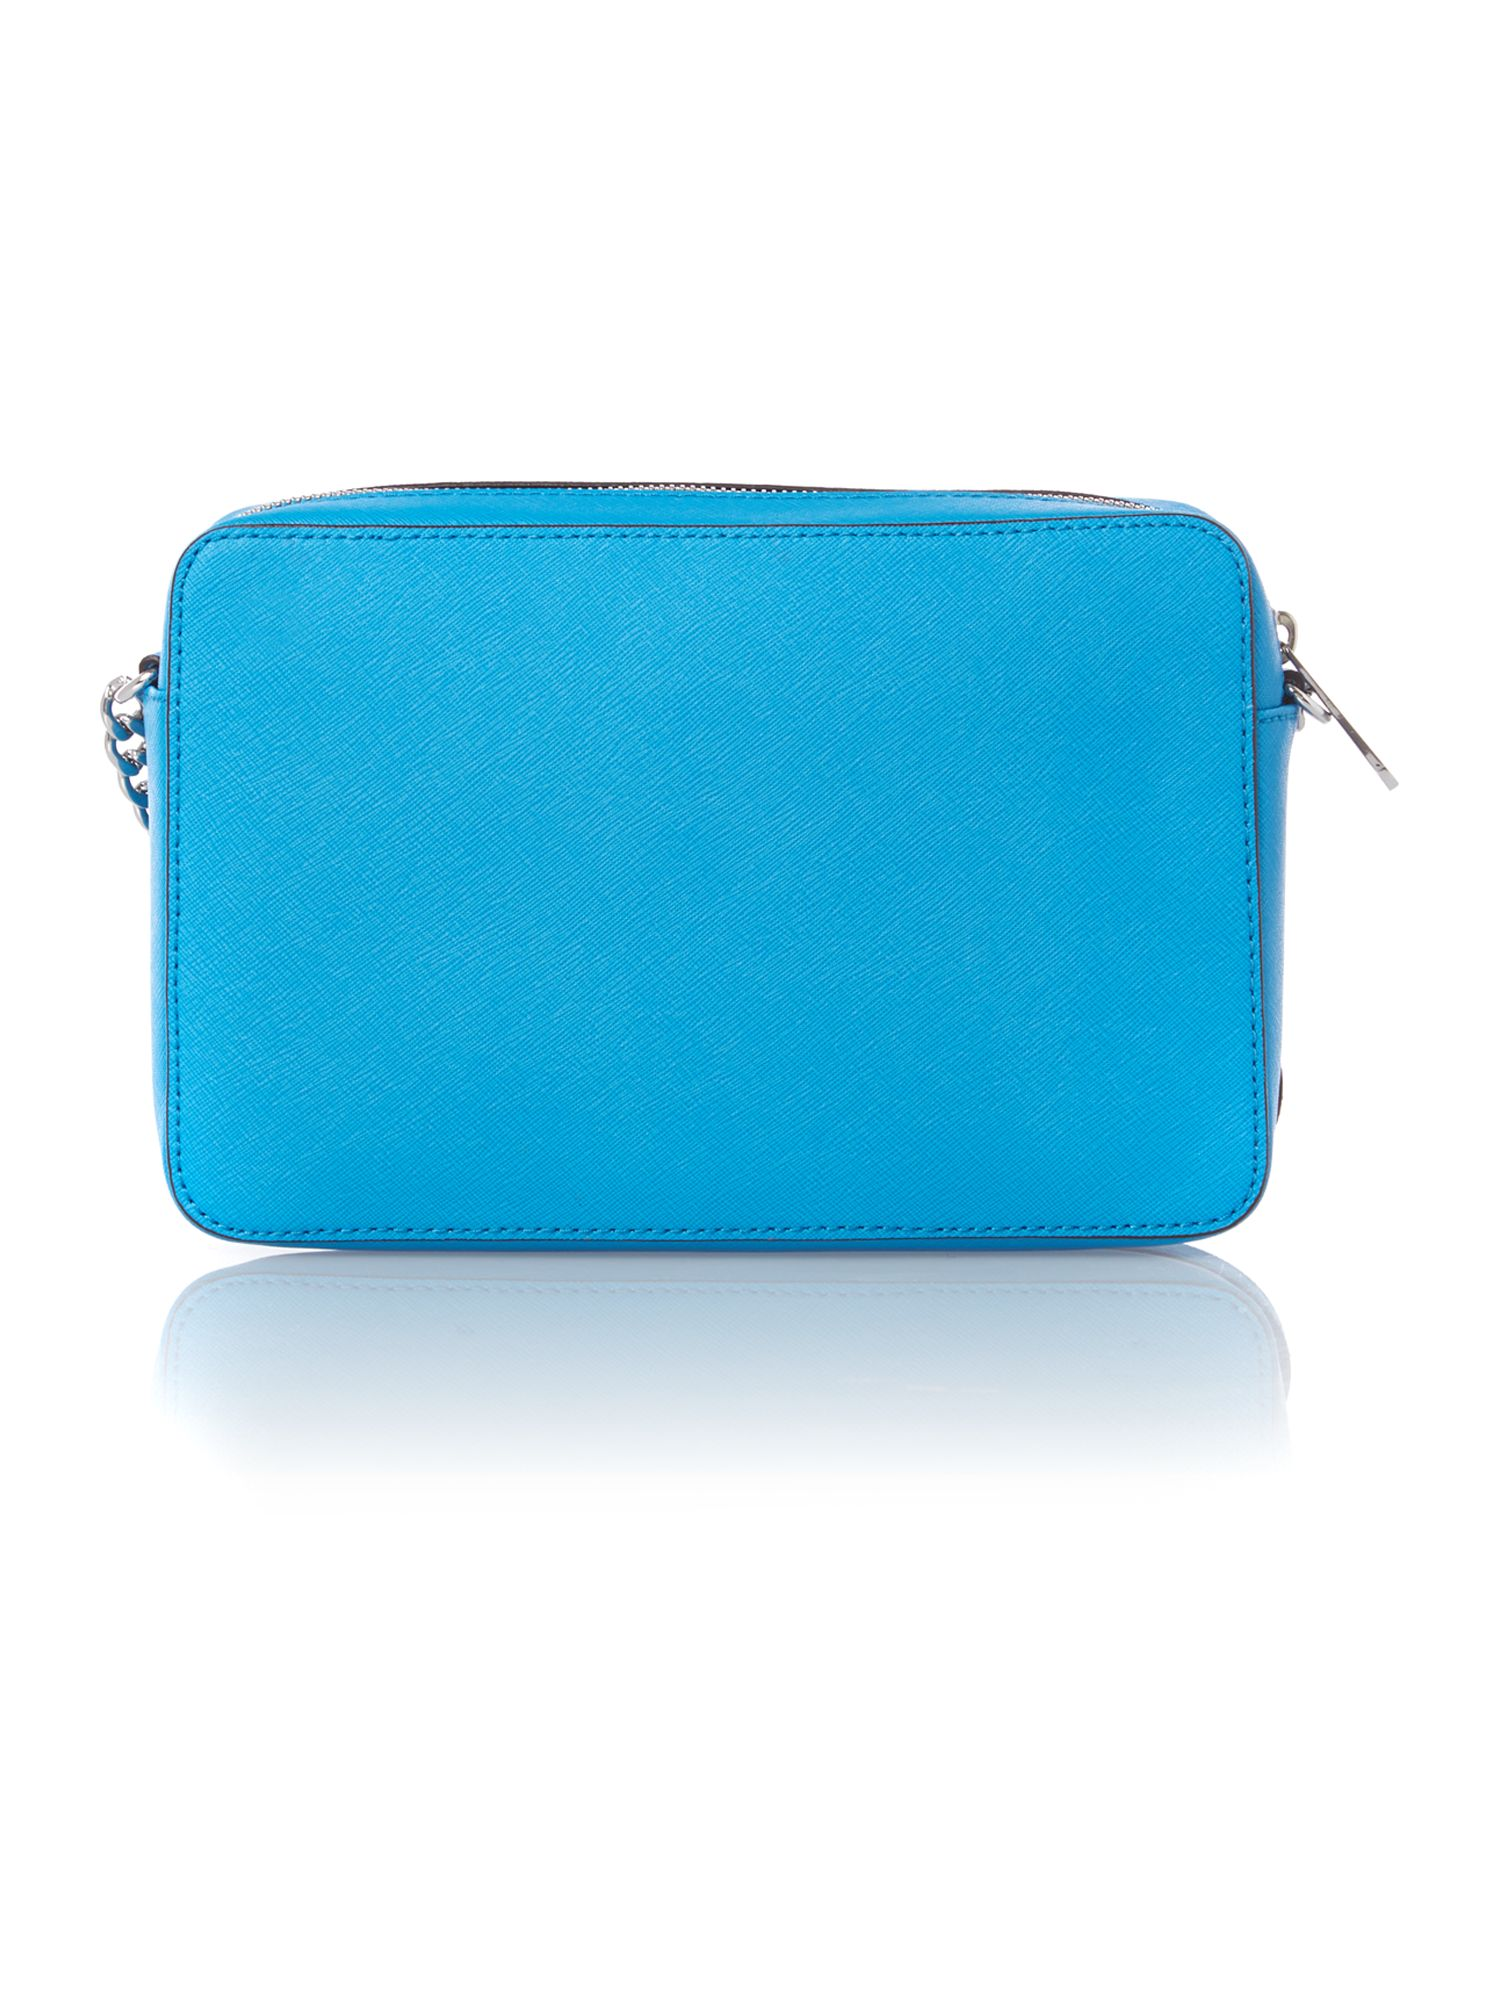 Jet set travel small blue cross body bag